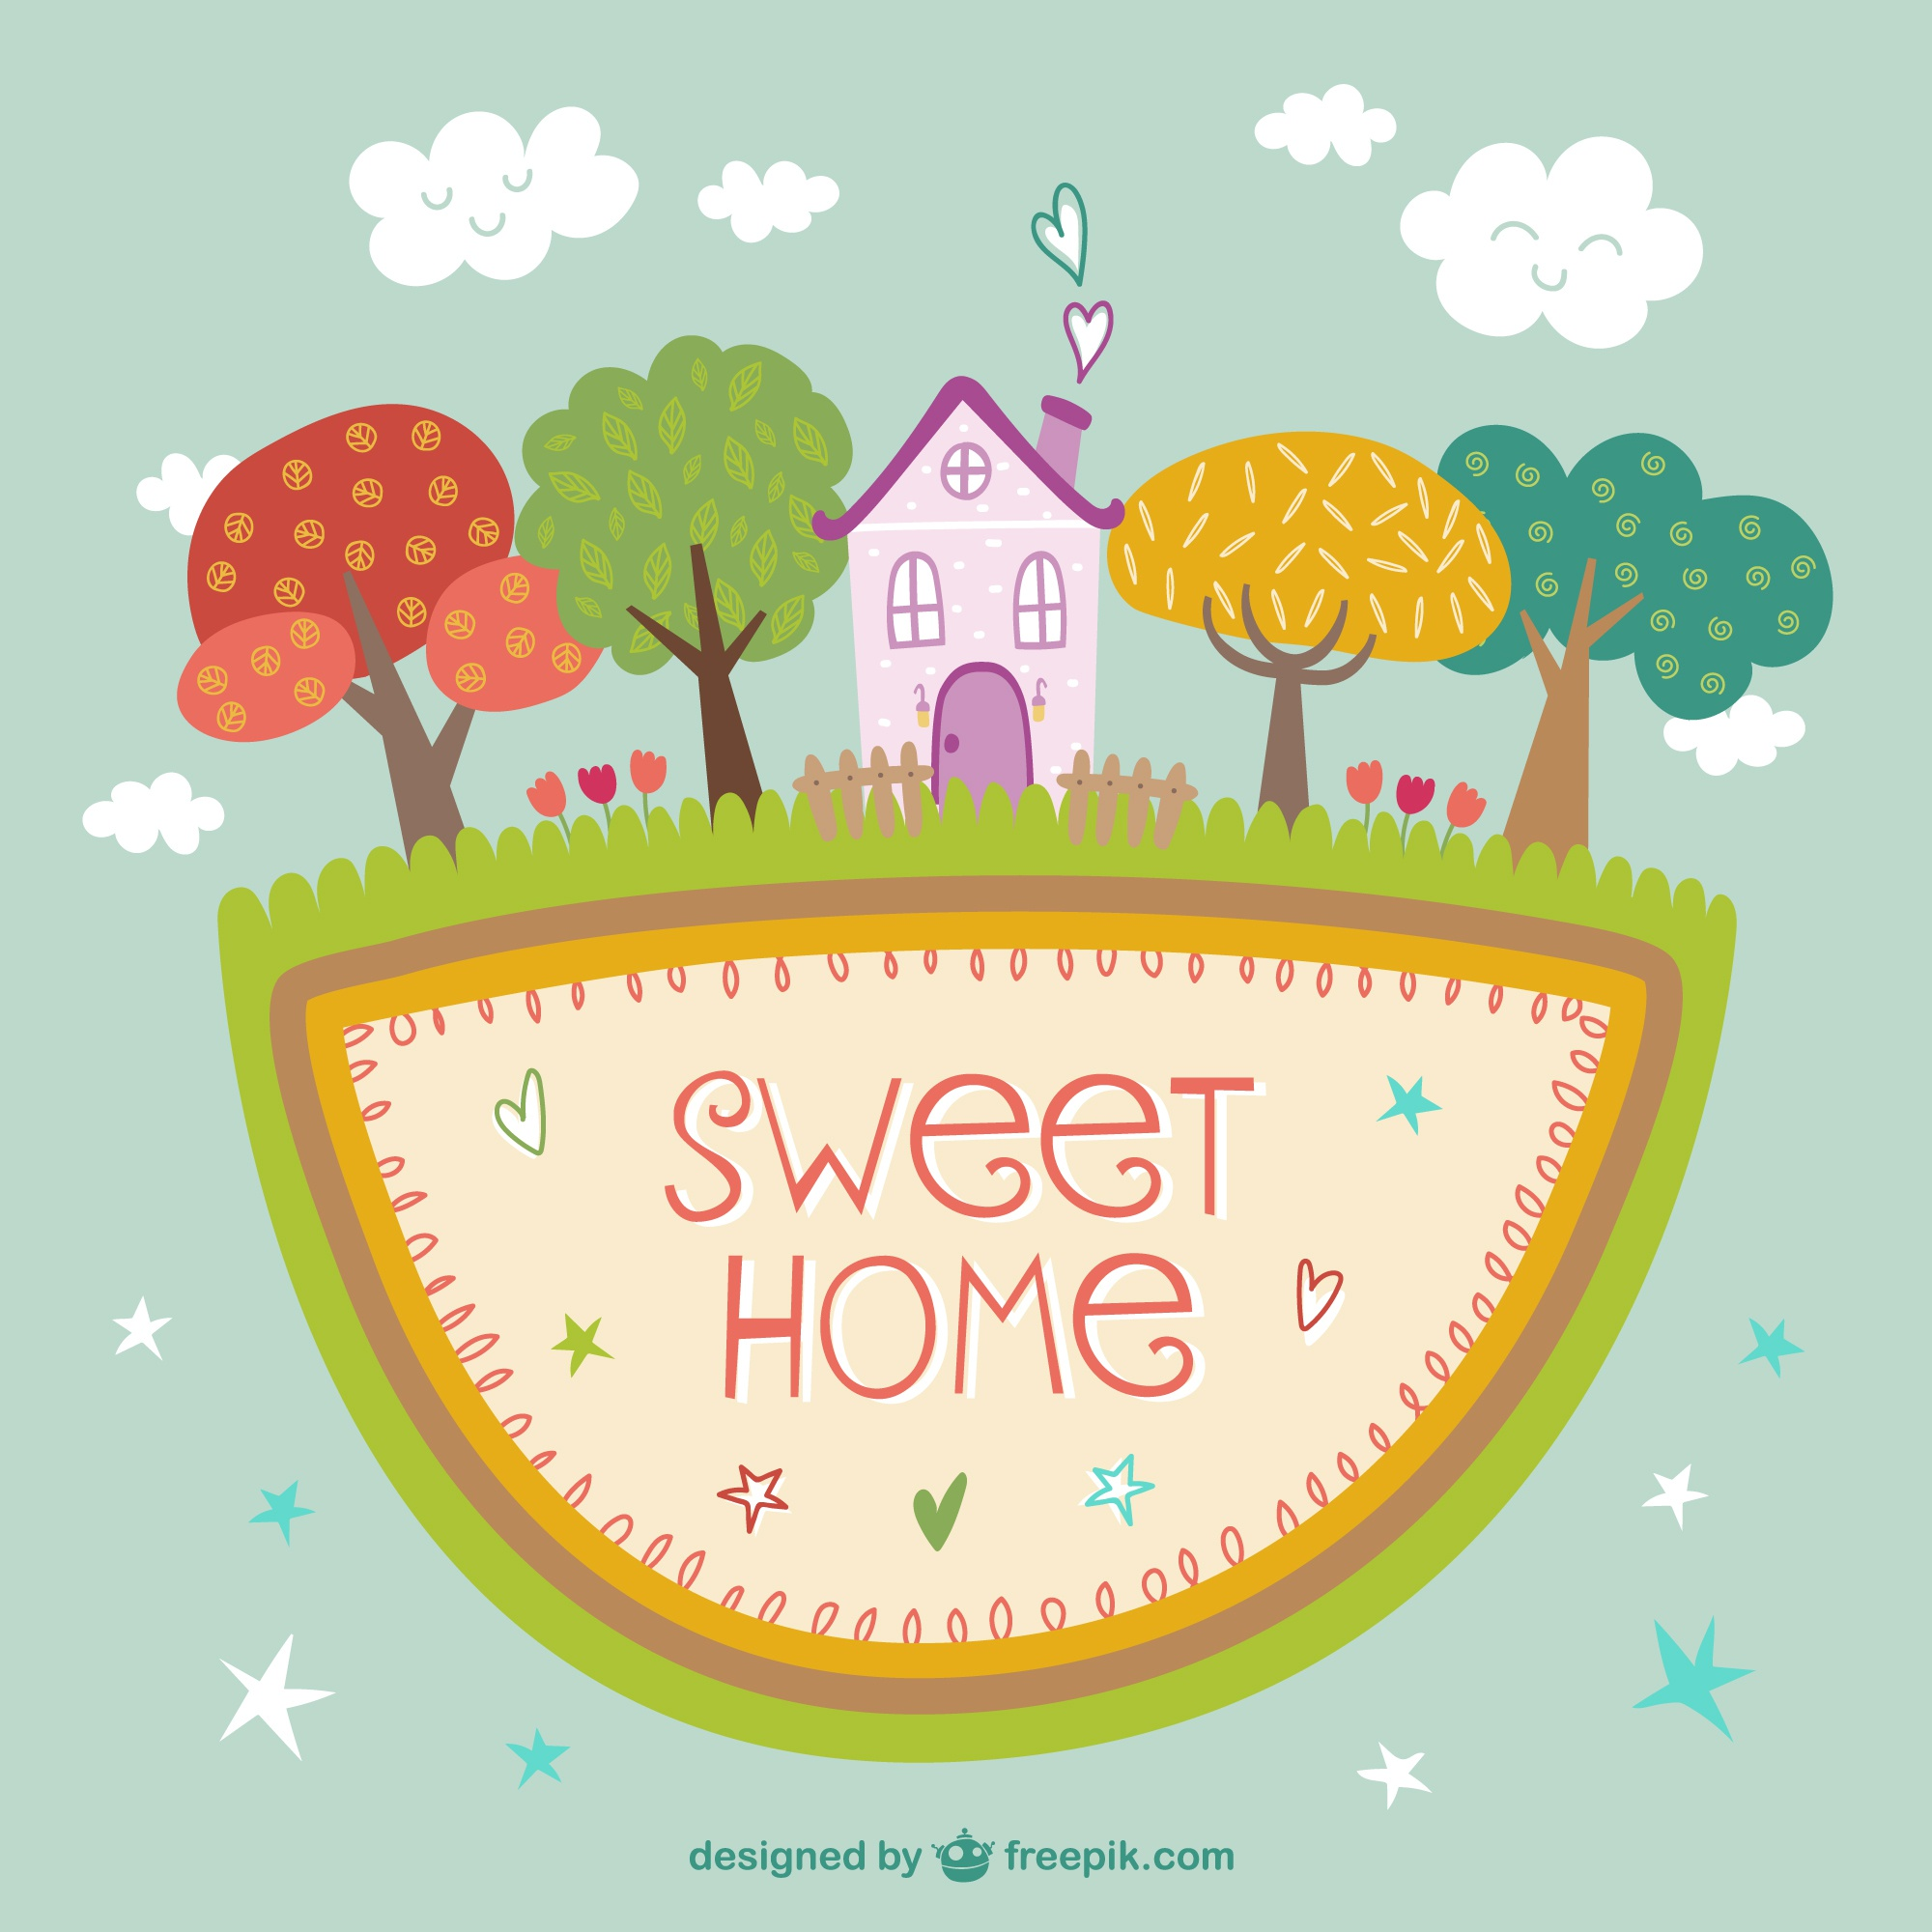 Sweet home with trees